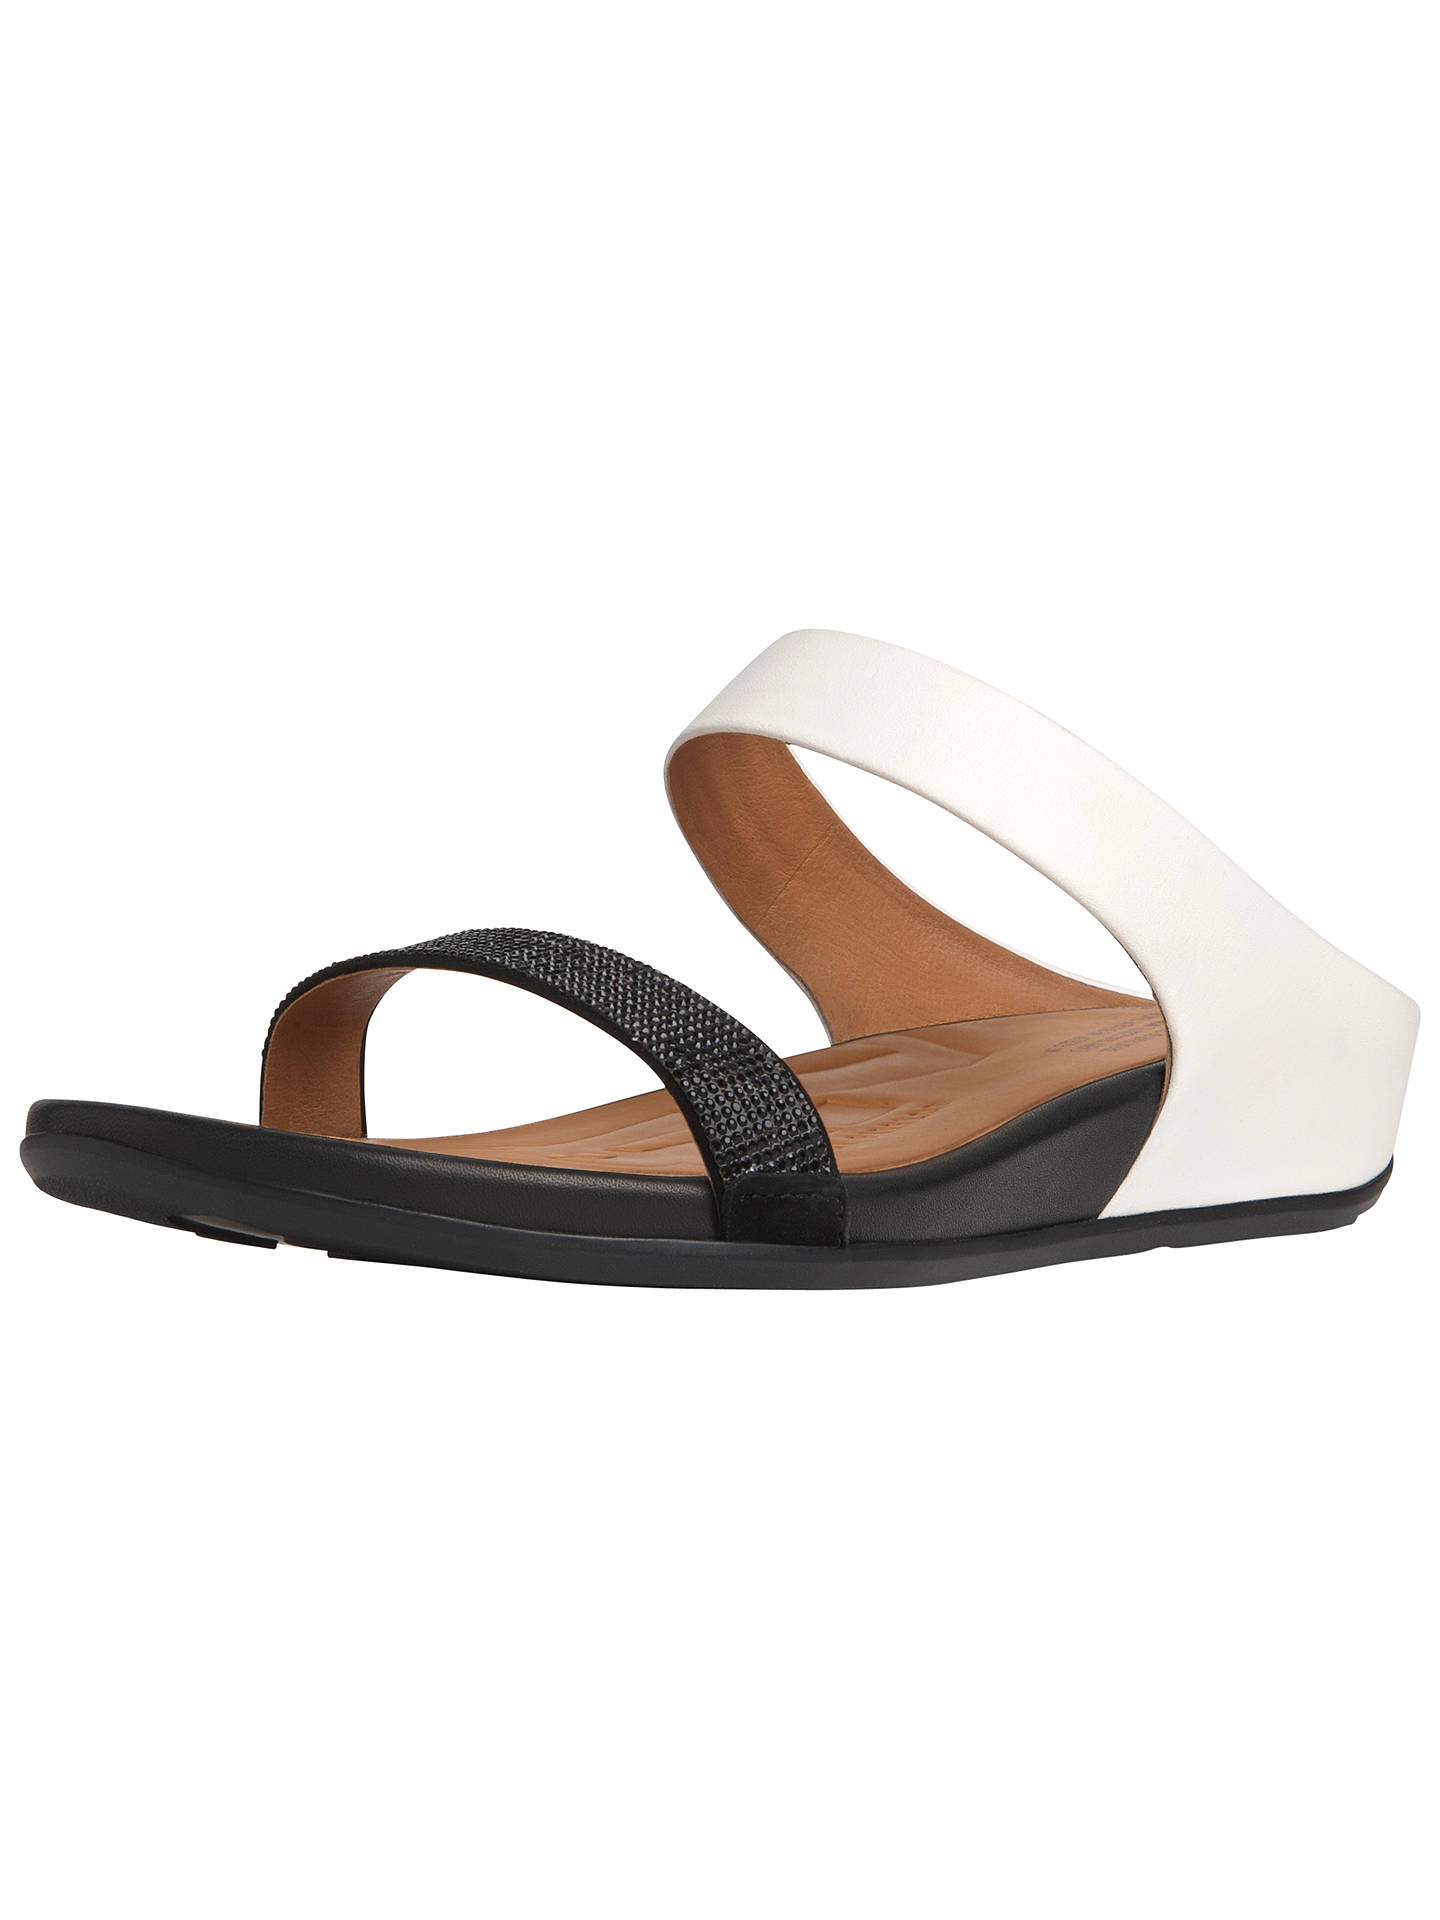 1e2efabd97af Buy FitFlop Banda Crystal Slide Leather Sandals